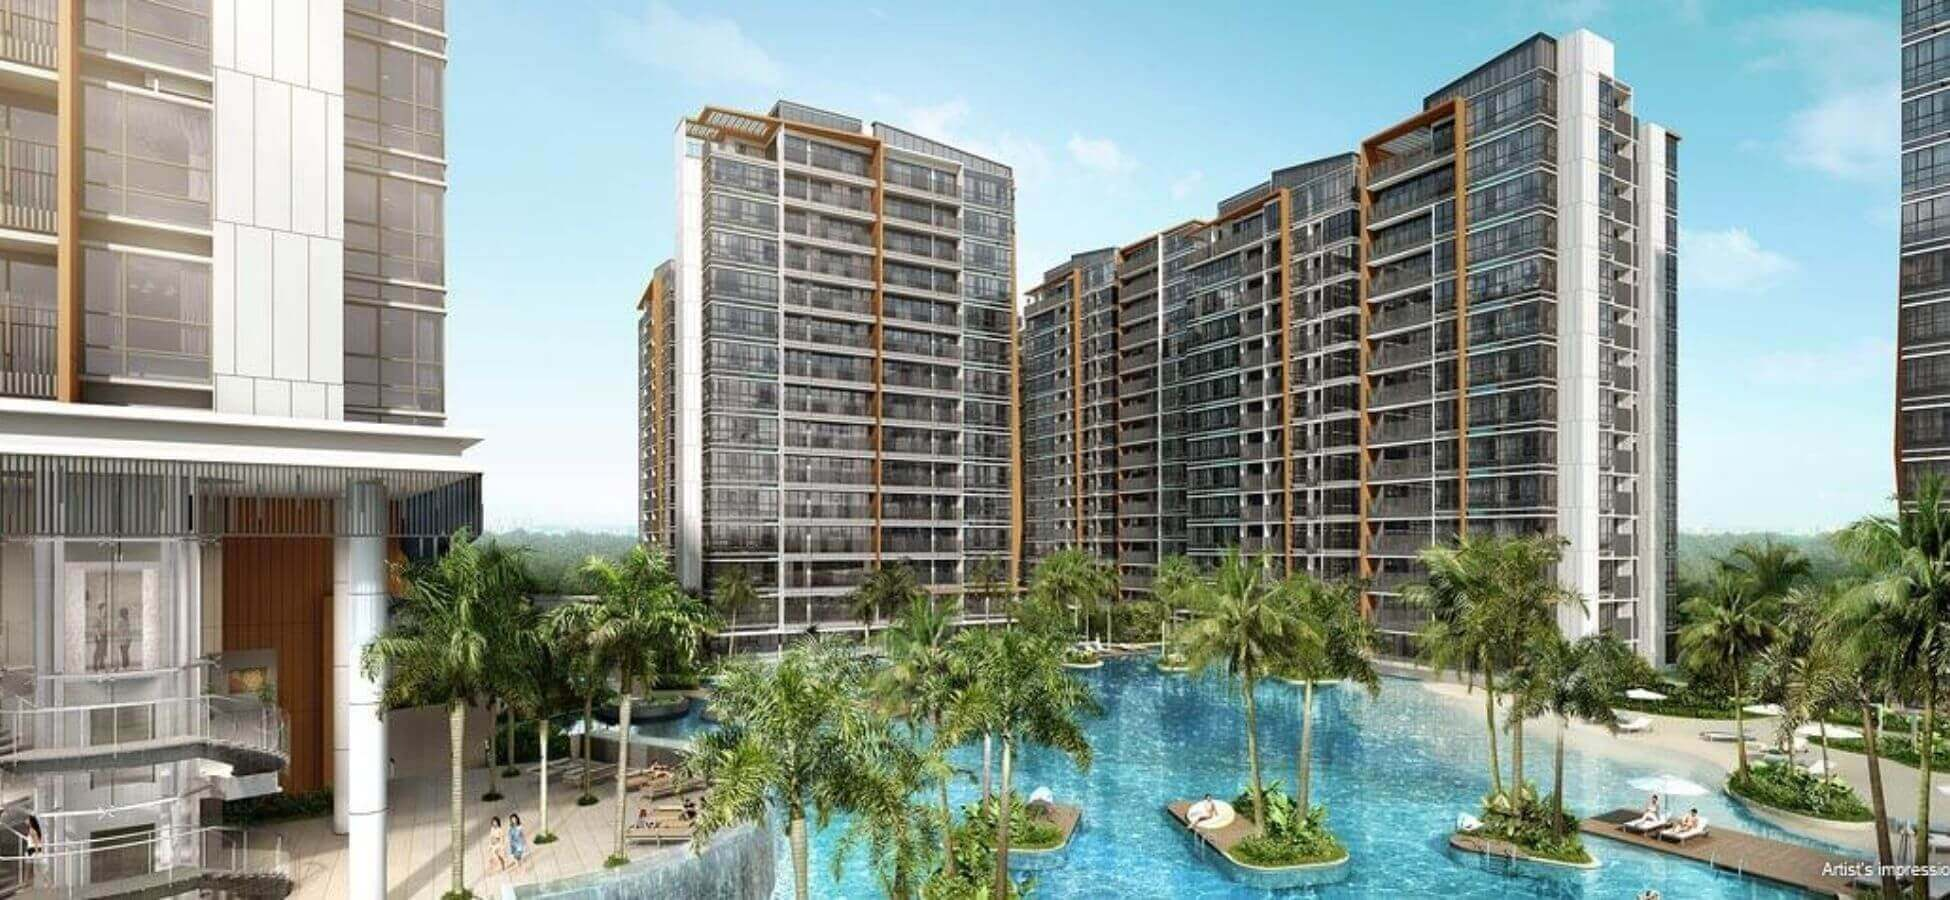 <span>Coco Palms</span> is by CDL<br>Hong Leong & Hong Realty